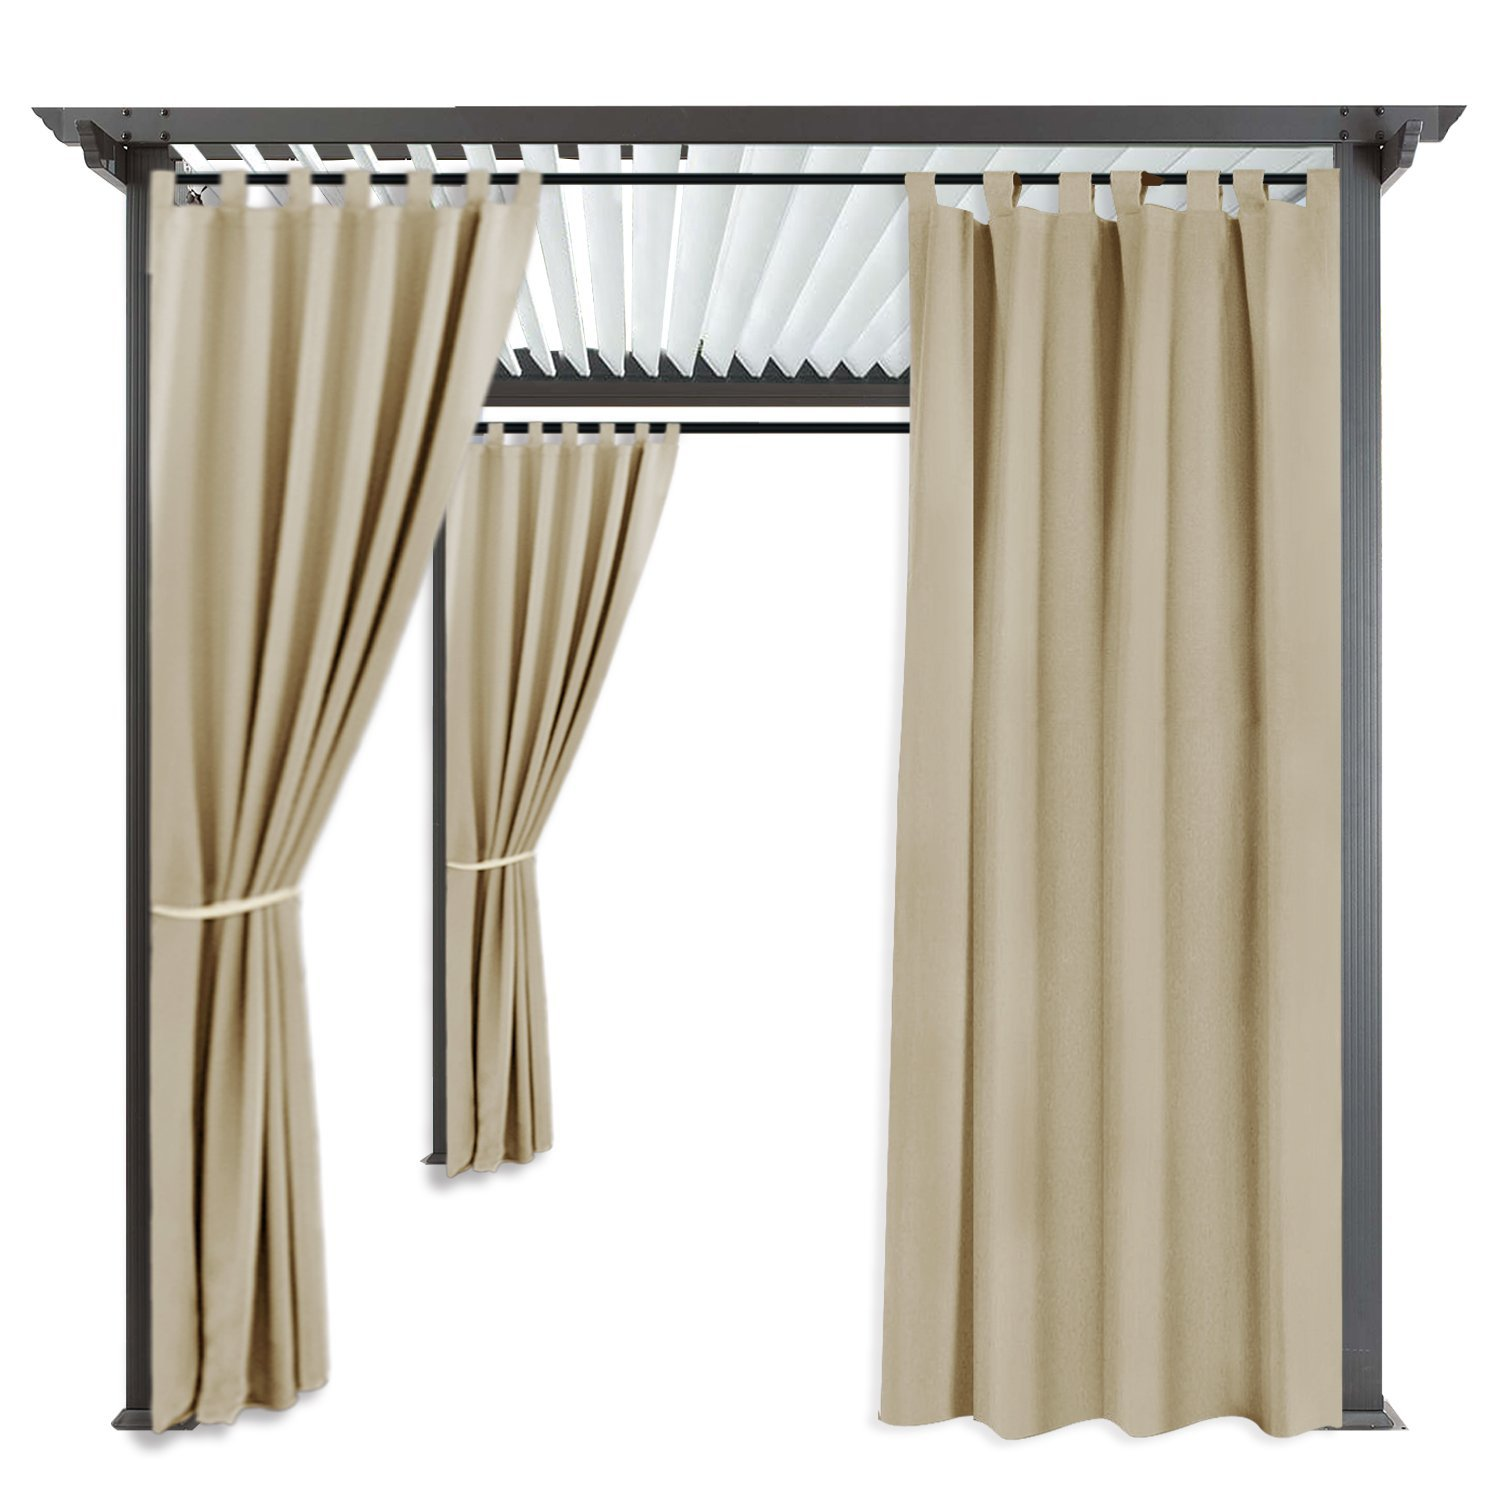 RYB HOME Pergola Outdoor Curtain Panel Drapes Blackout Curtains Outdoor Décor Tab Top Grommet Water Repellent for Patio, 1 Panel, Width 52'' x Height 84'', Cream Beige